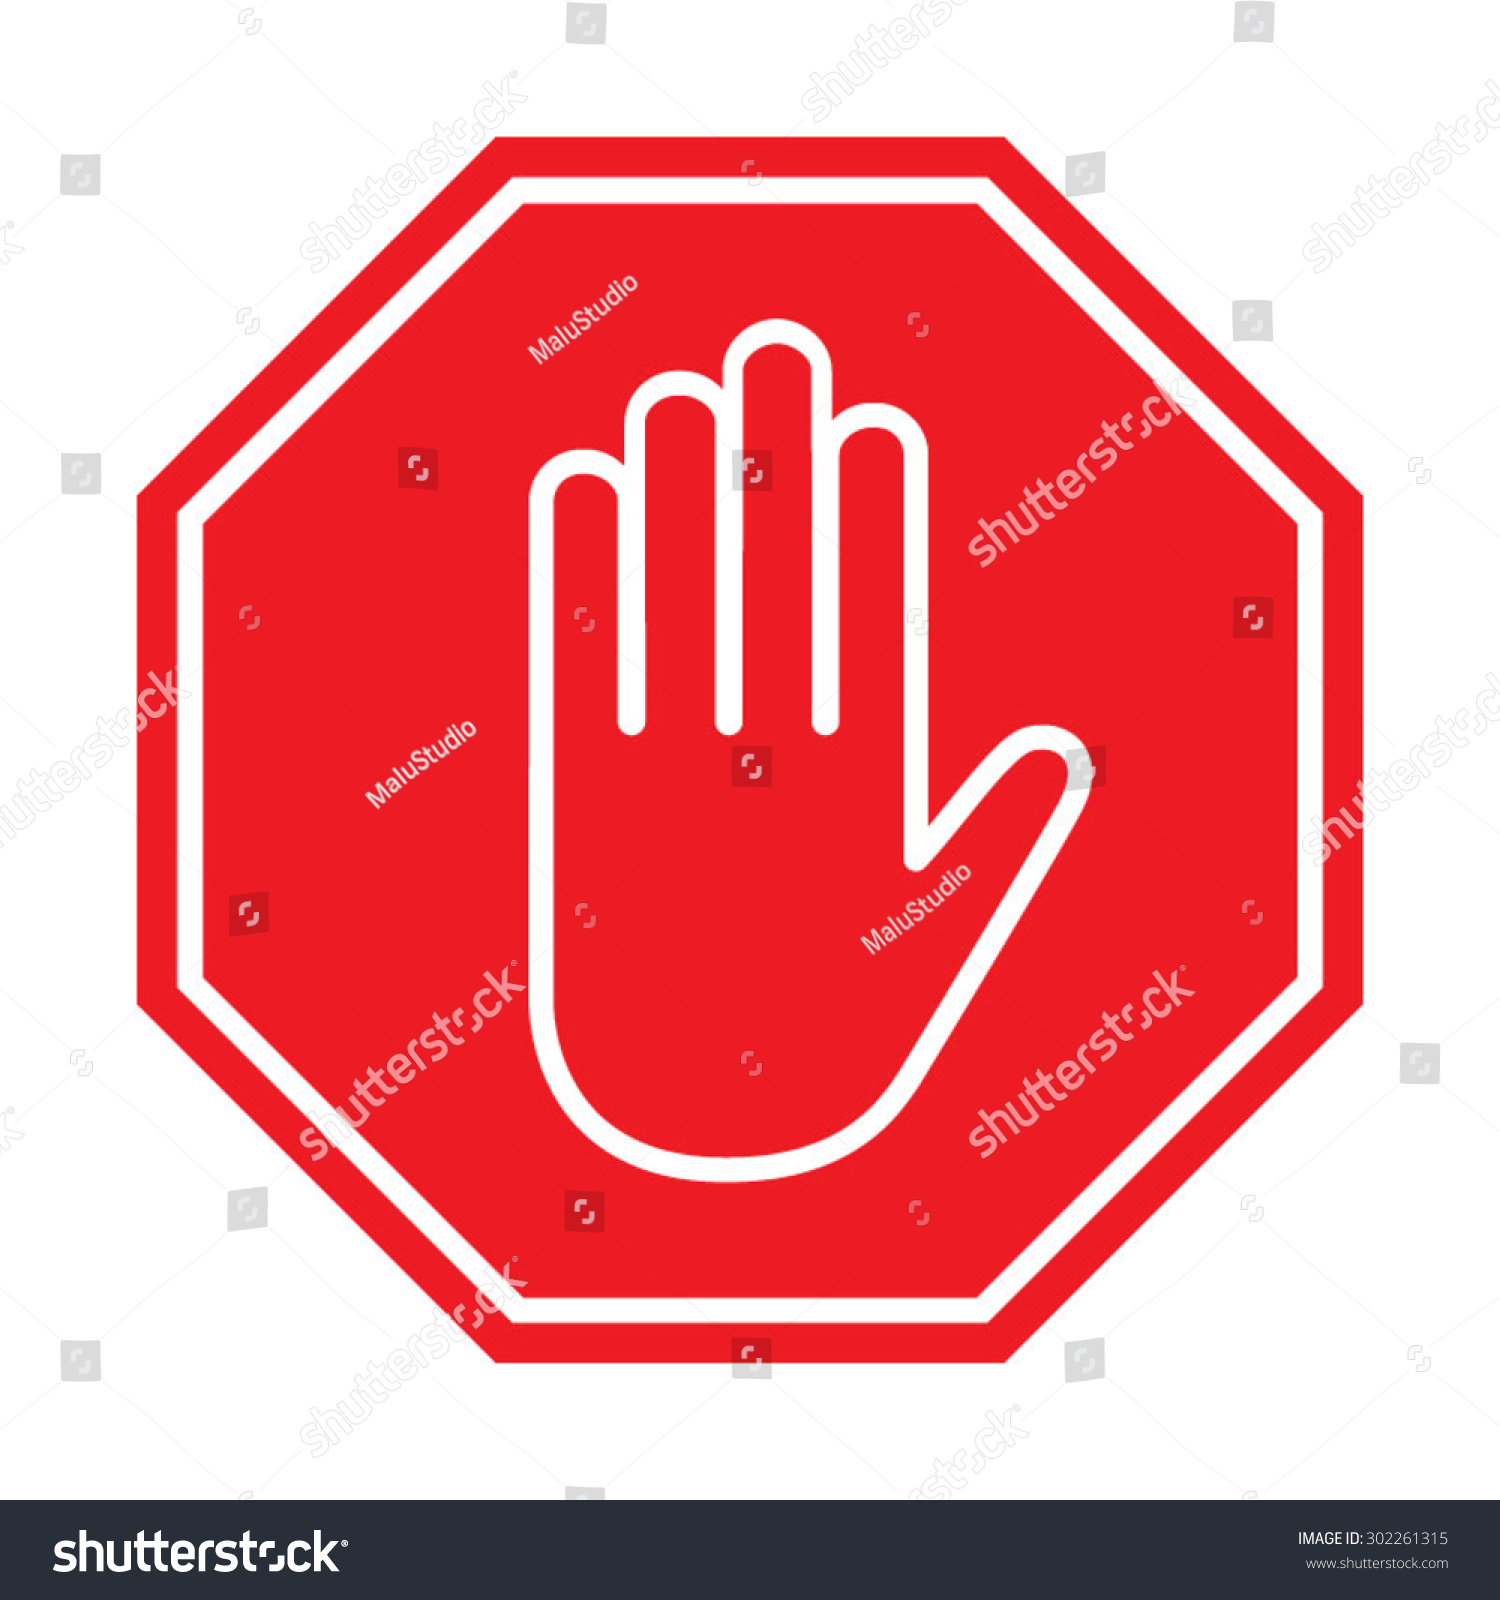 stop sign vector illustration stock vector 302261315 shutterstock rh shutterstock com vector image stop sign vector stop sign icon